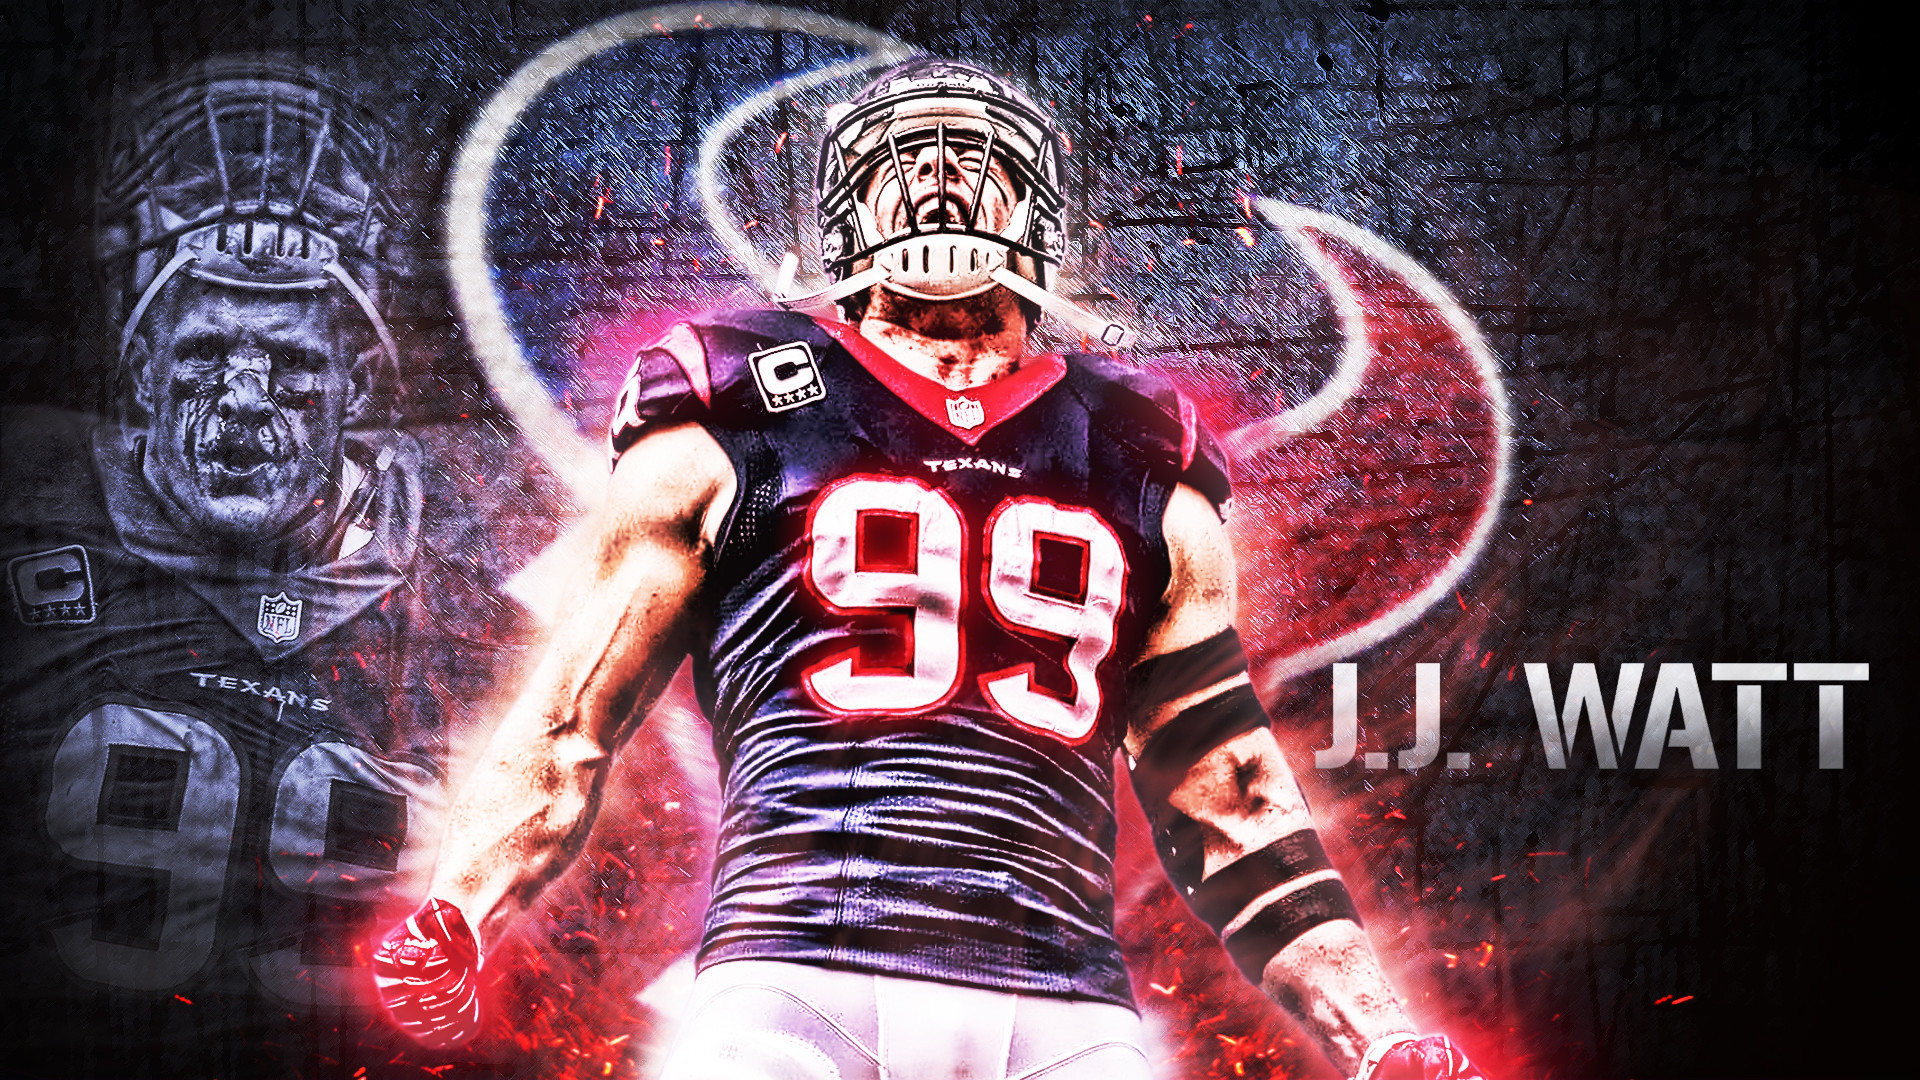 NFL Players Wallpapers (66+ pictures)